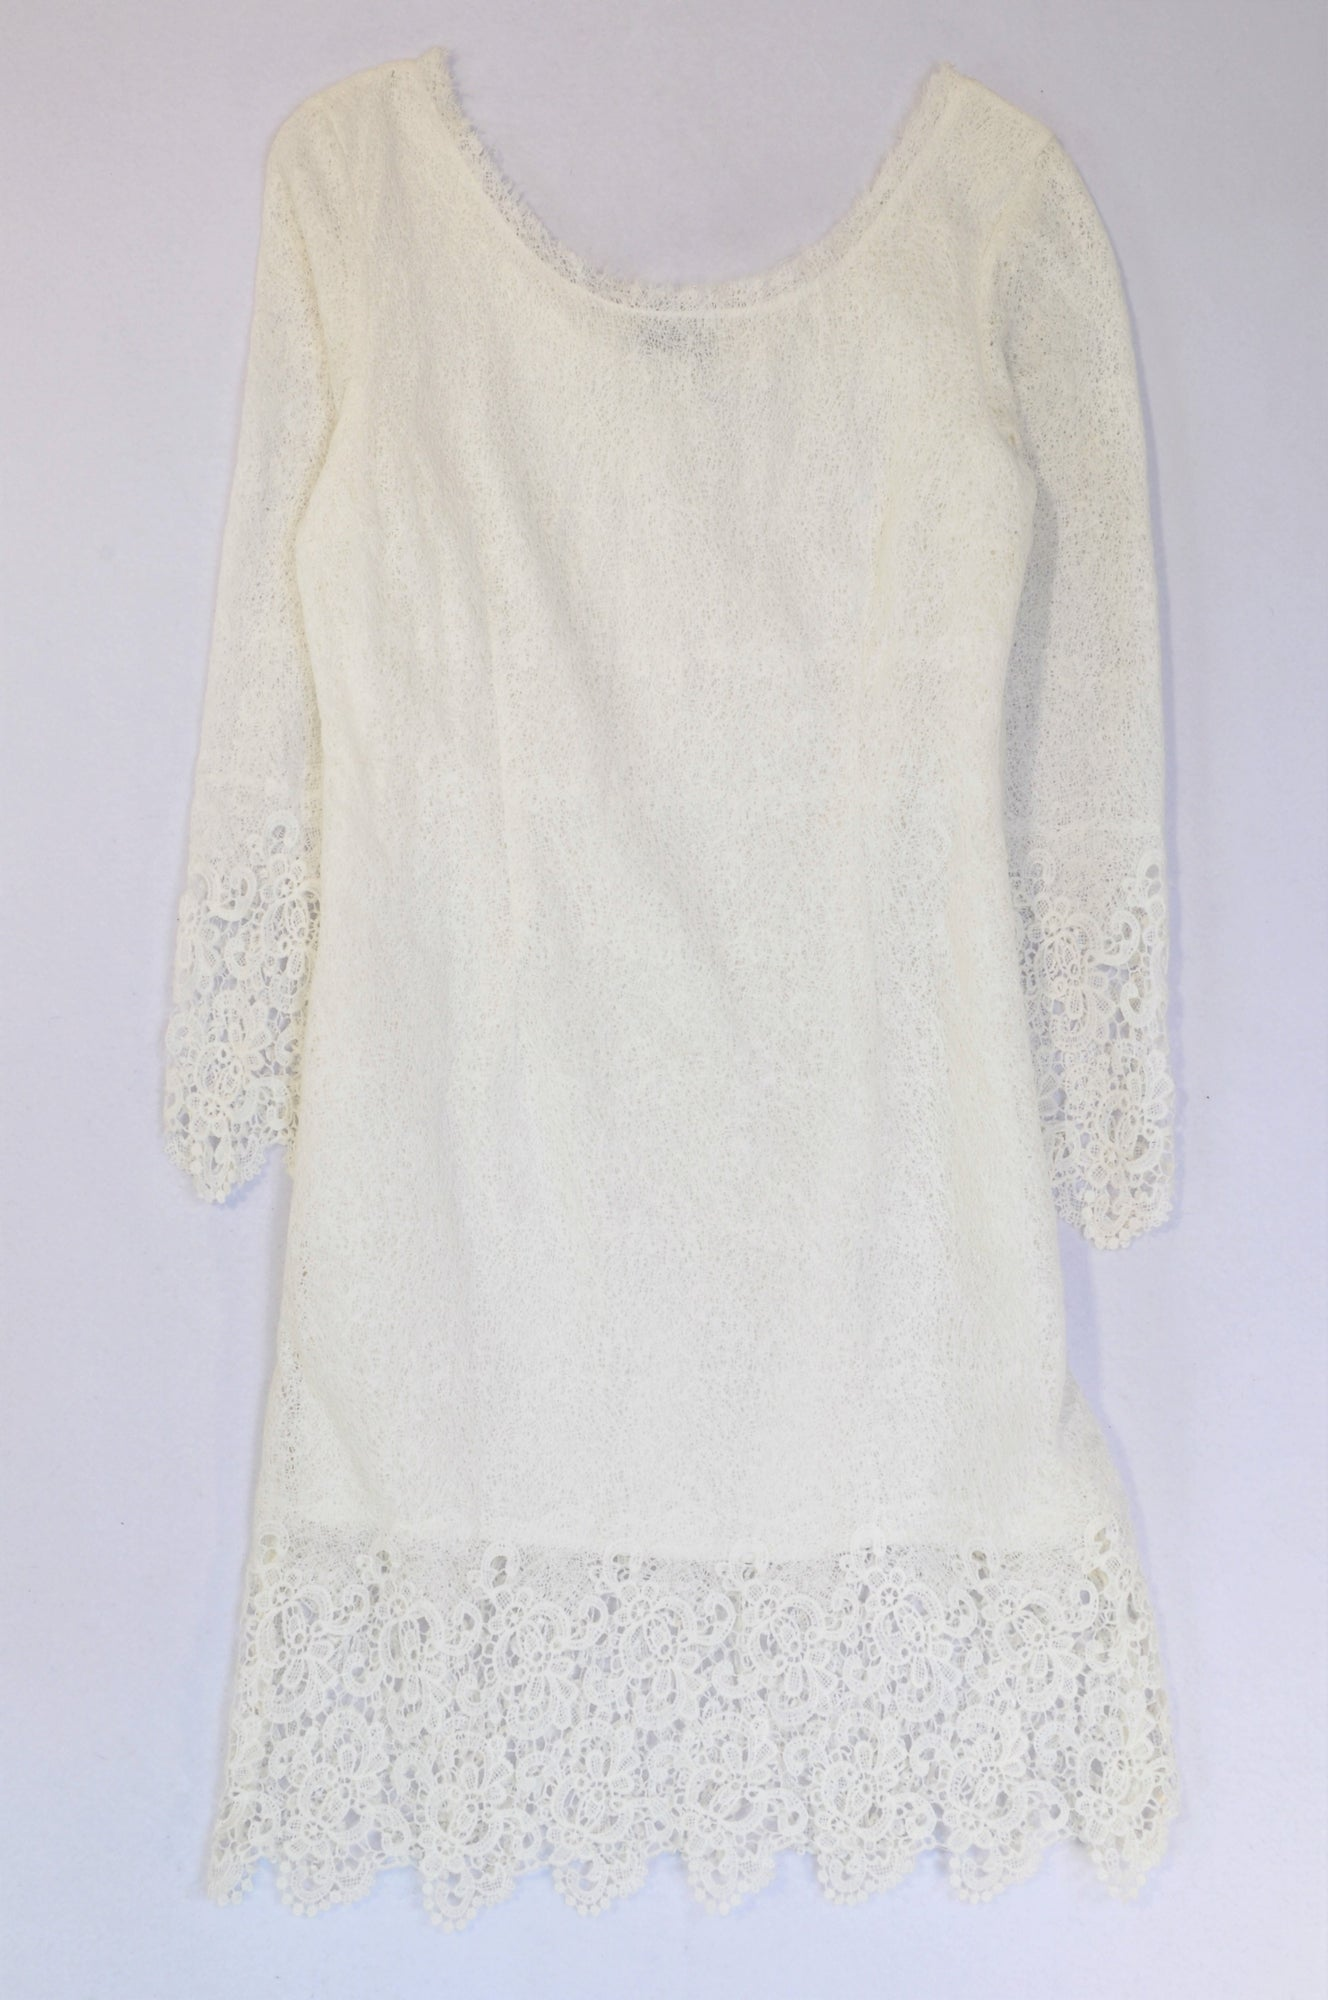 G-Couture White Long Sleeve Lace Trim Dress Women Size 34